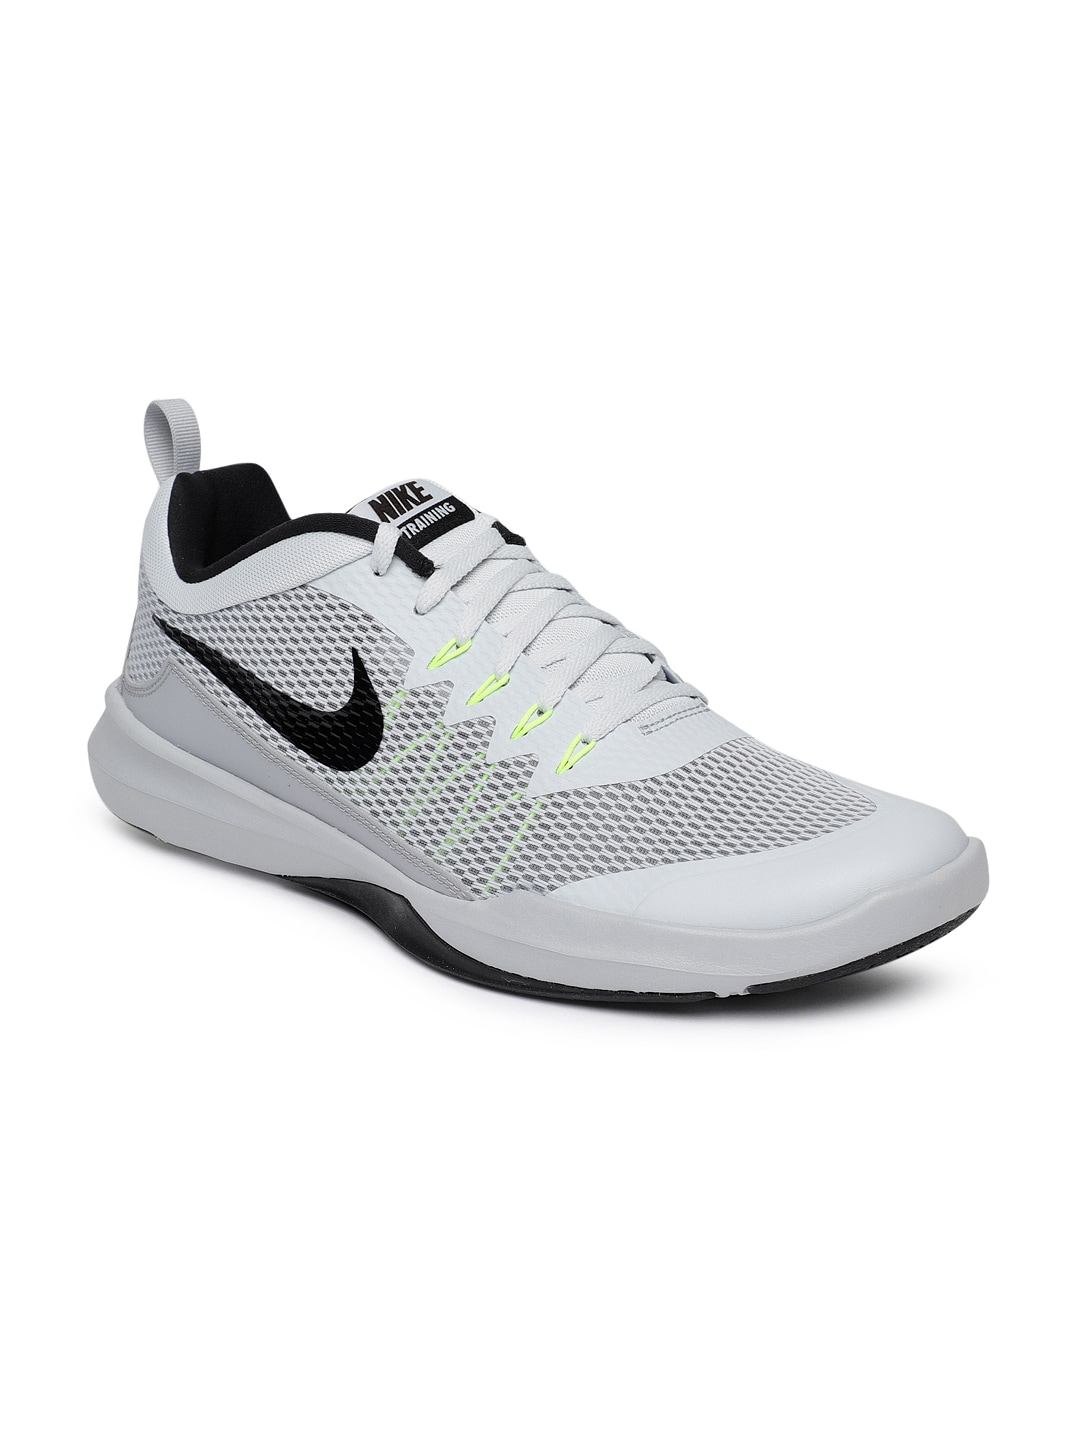 timeless design 0a8e7 37c3b Nike Shoes - Buy Nike Shoes for Men, Women   Kids Online   Myntra